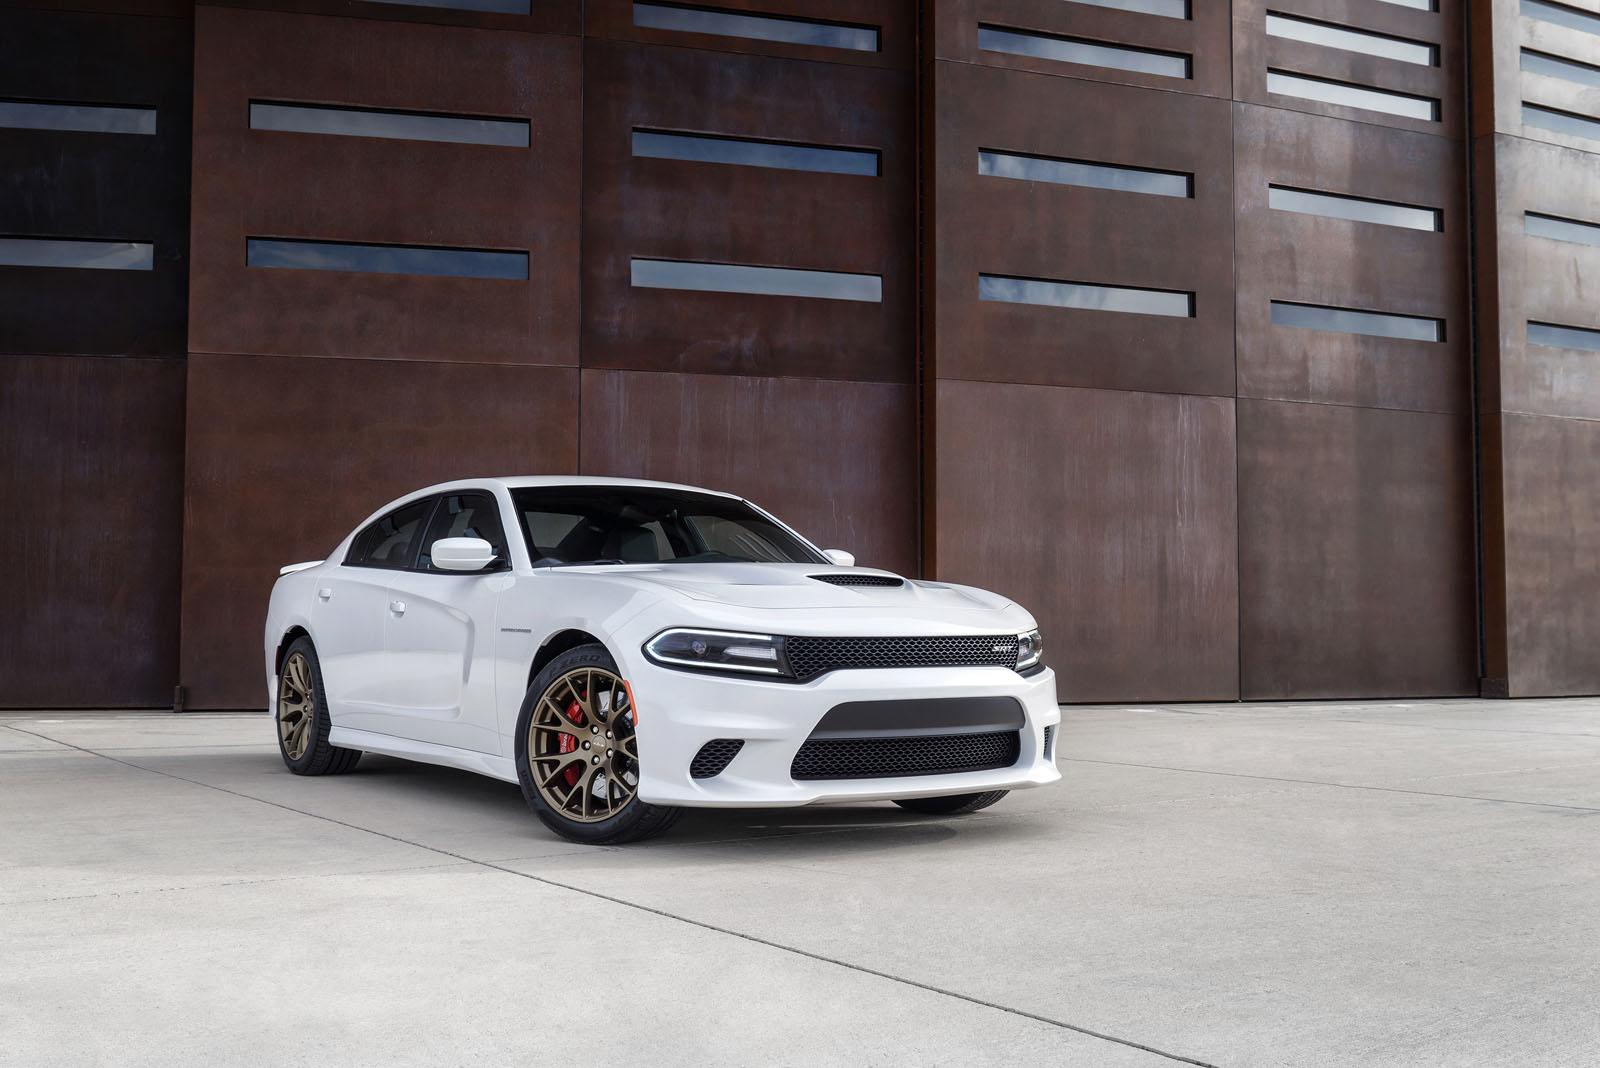 2015 Dodge Charger Srt Hellcat Priced From 63 995